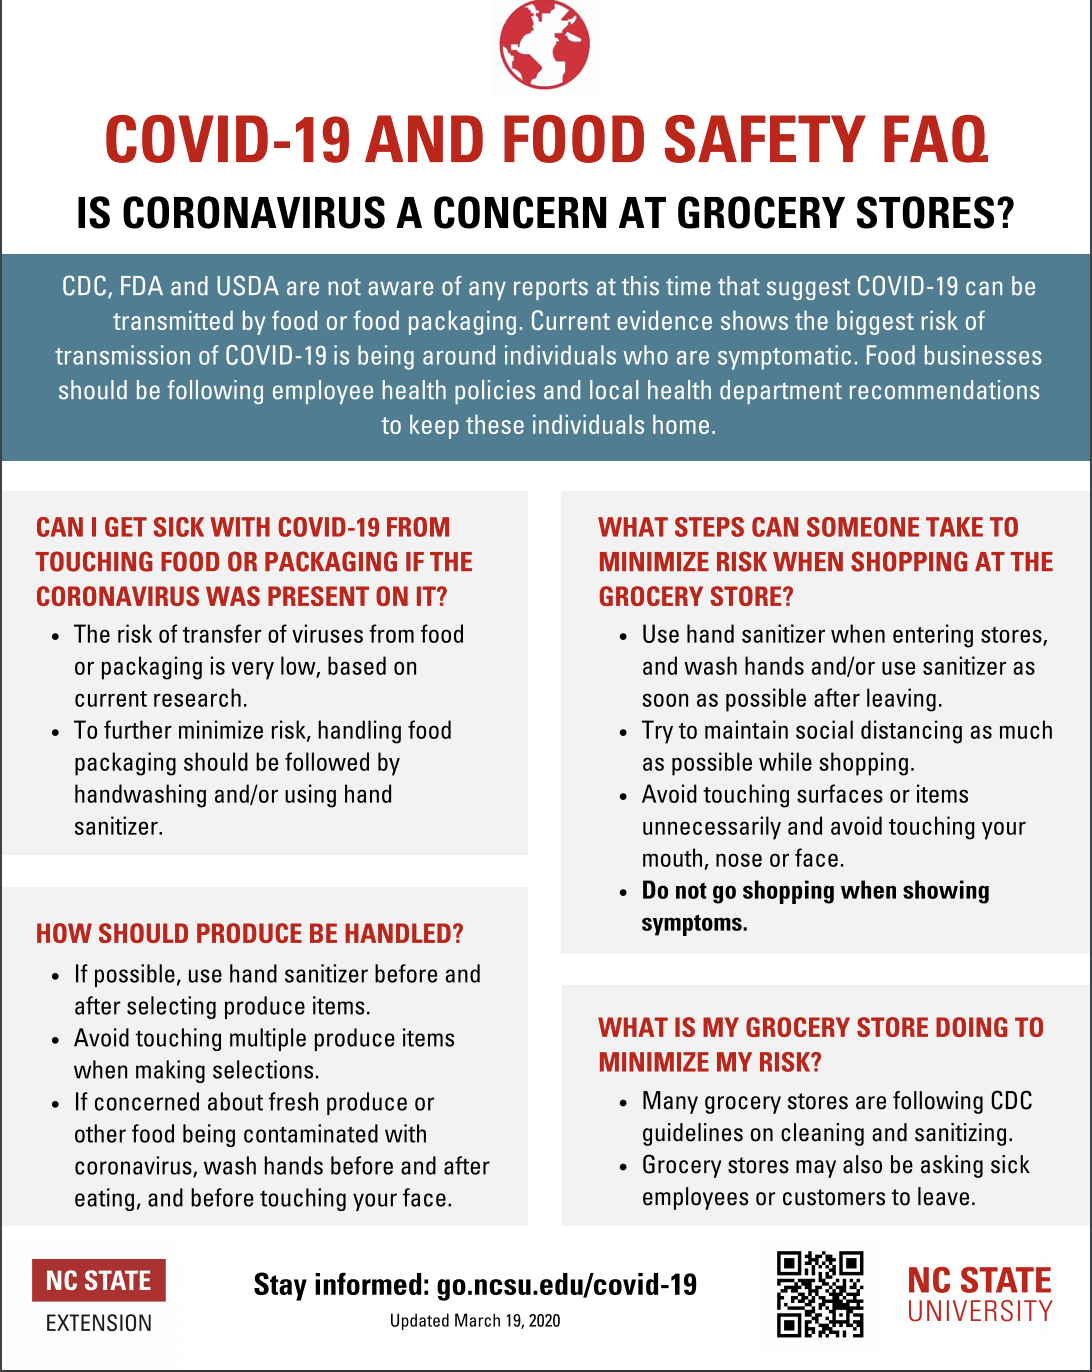 Concern at Grocery Store flyer image